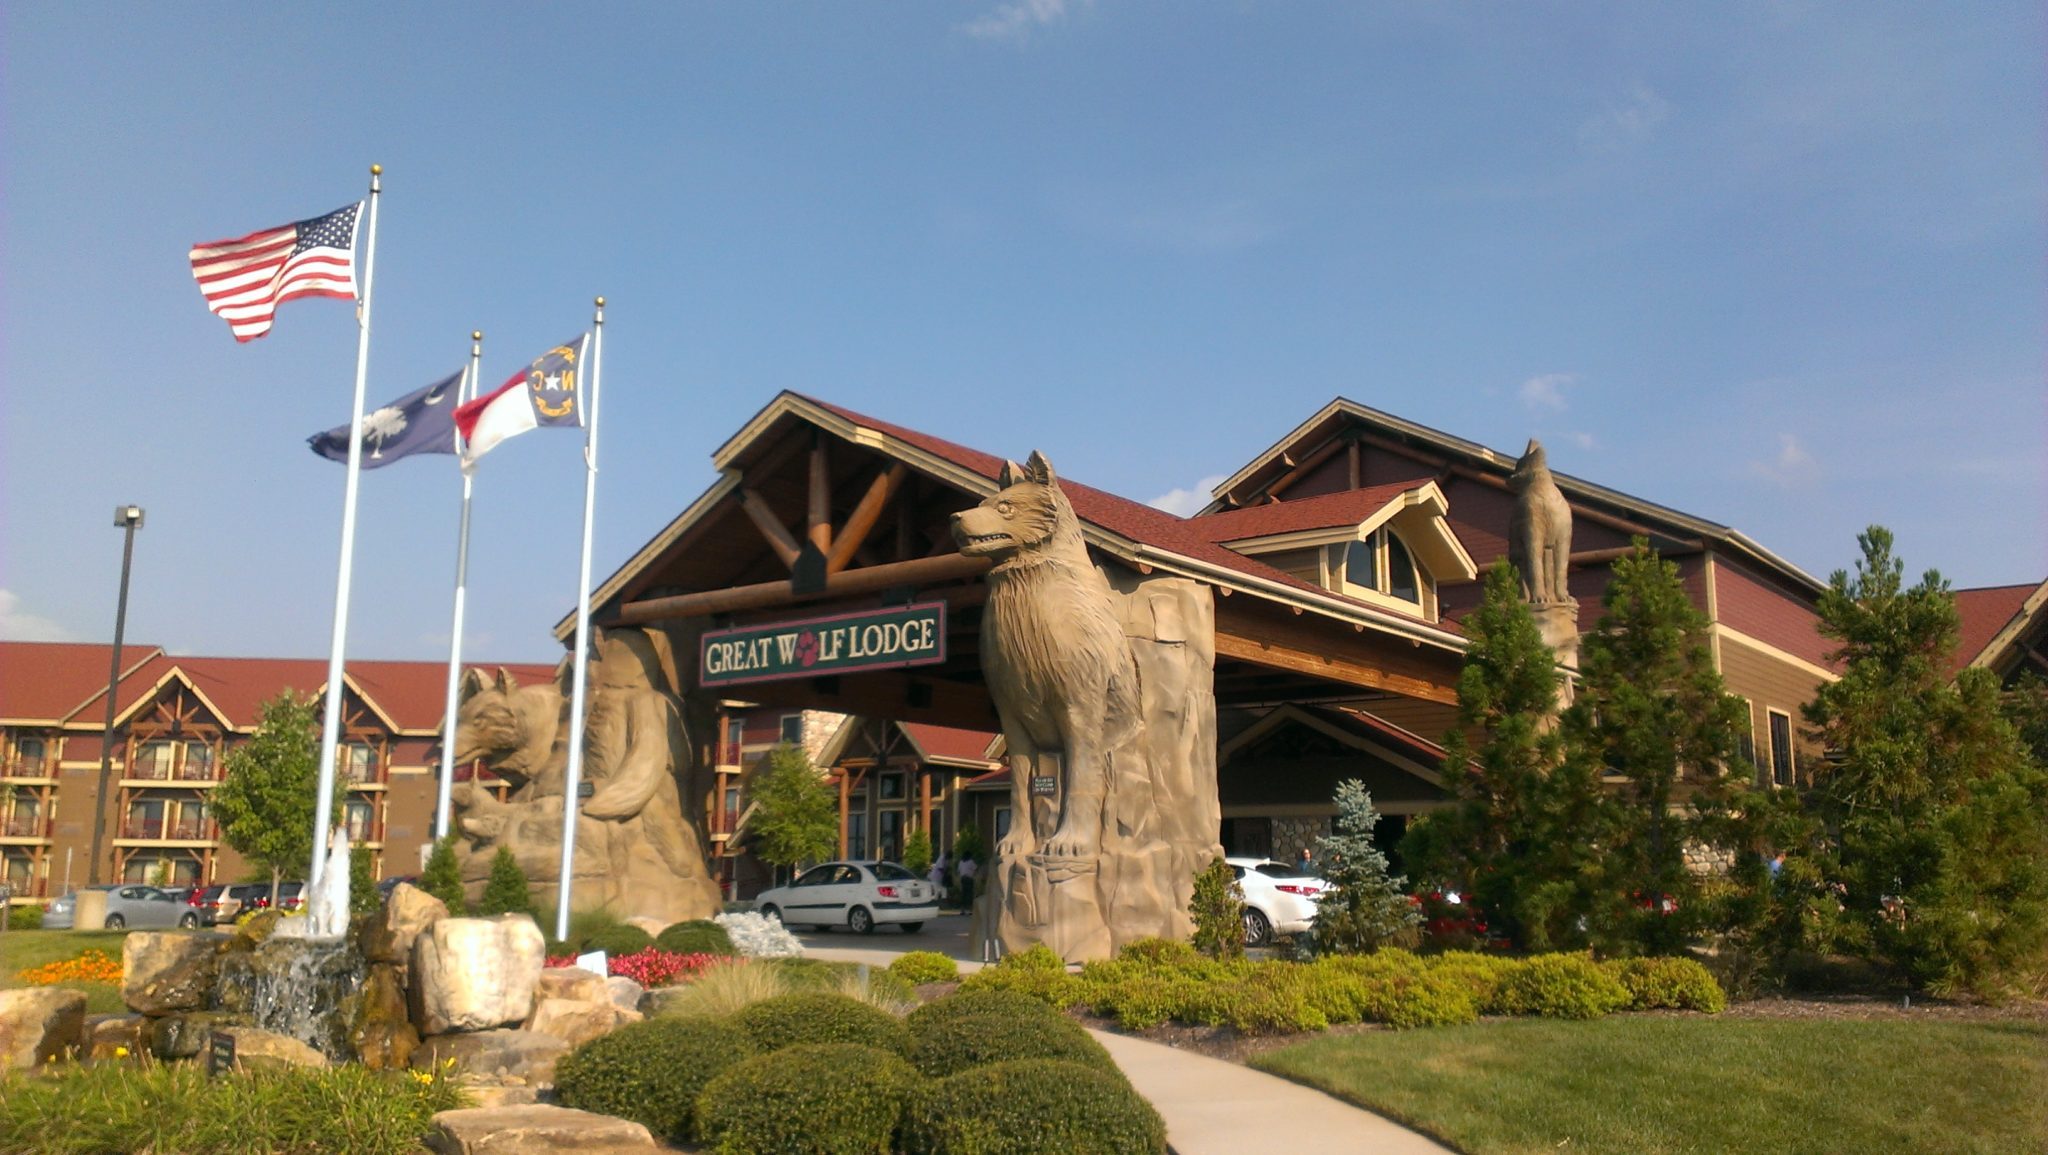 5 Reasons Why I Wouldn't Return To The Great Wolf Lodge